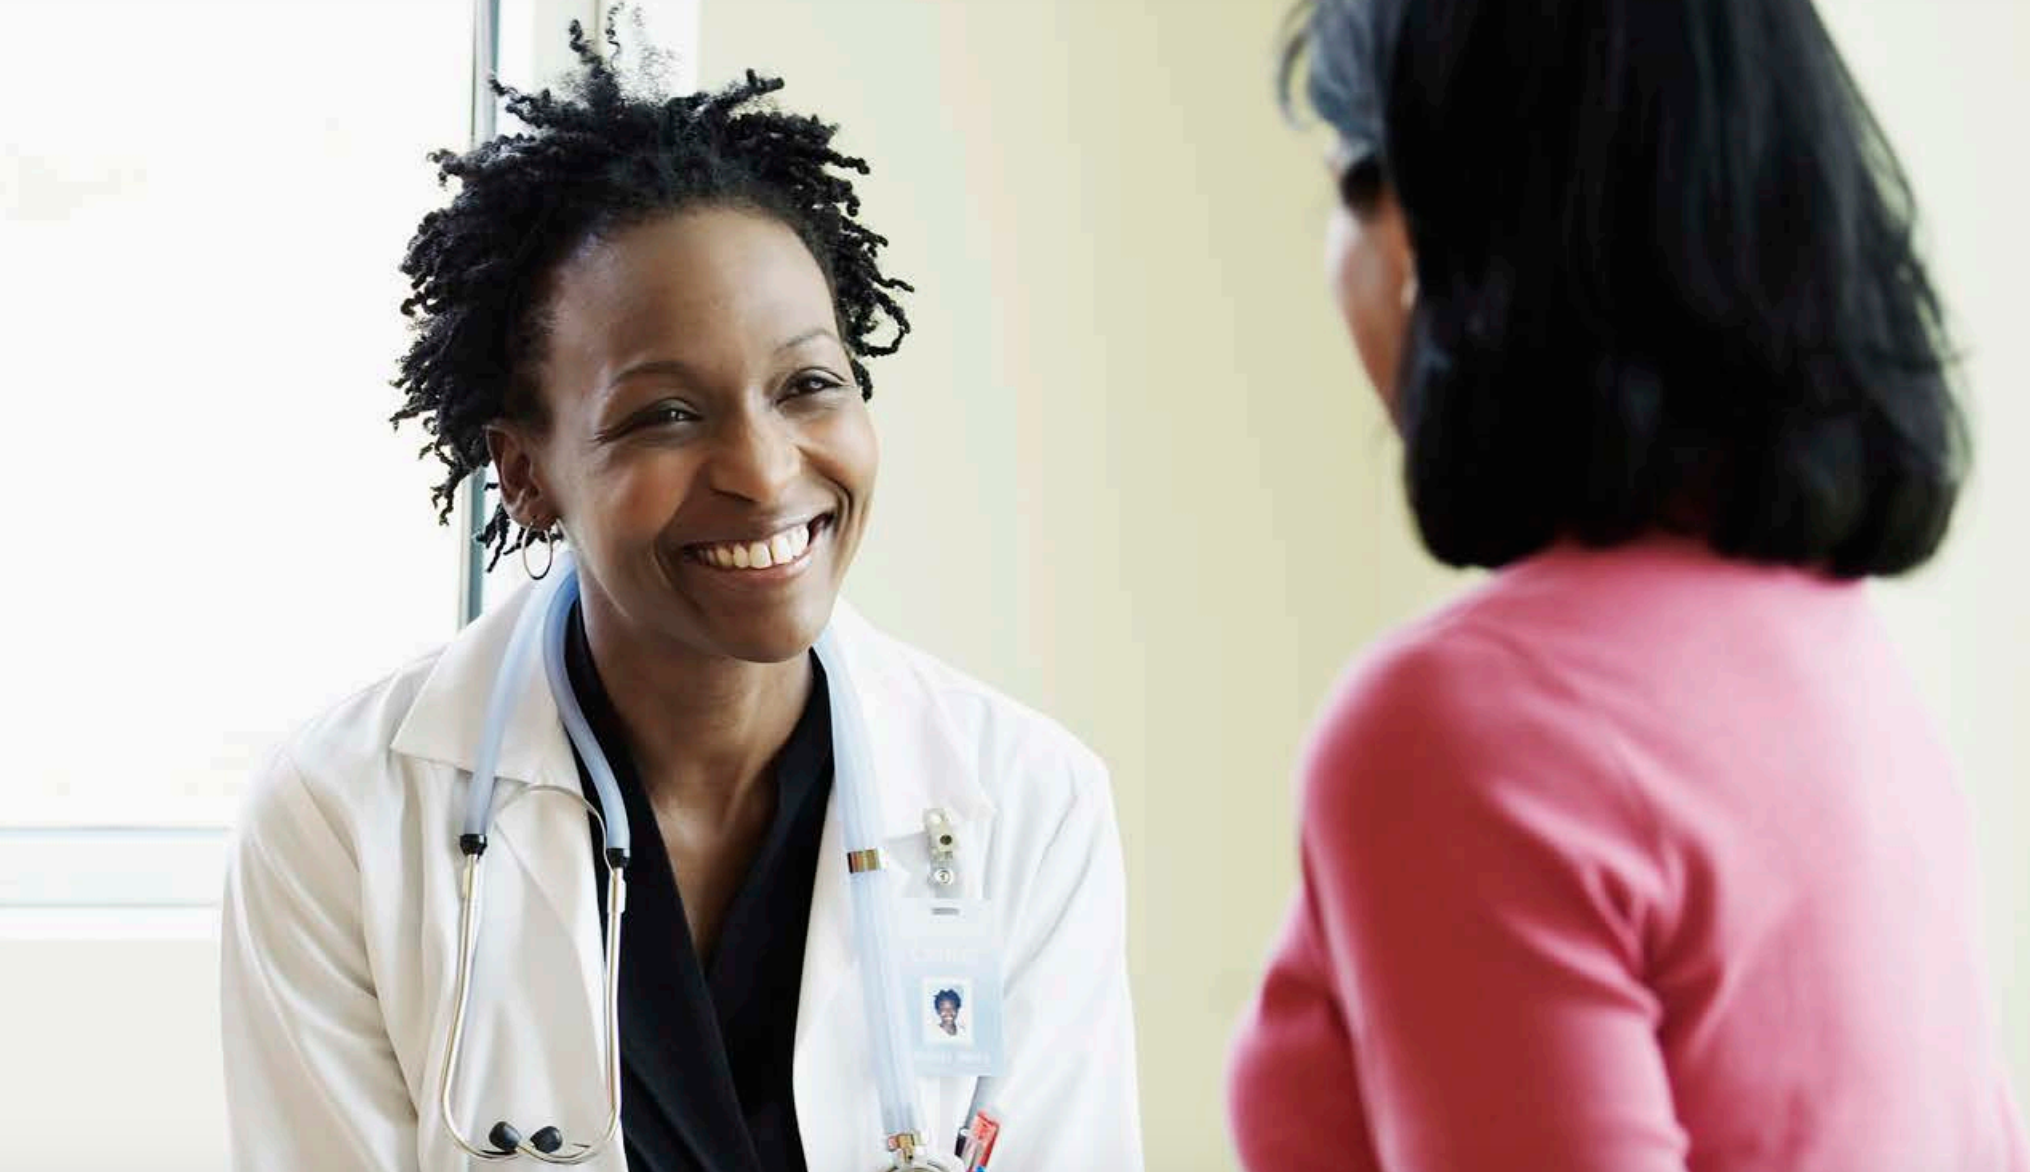 HIV Care for Trans Women